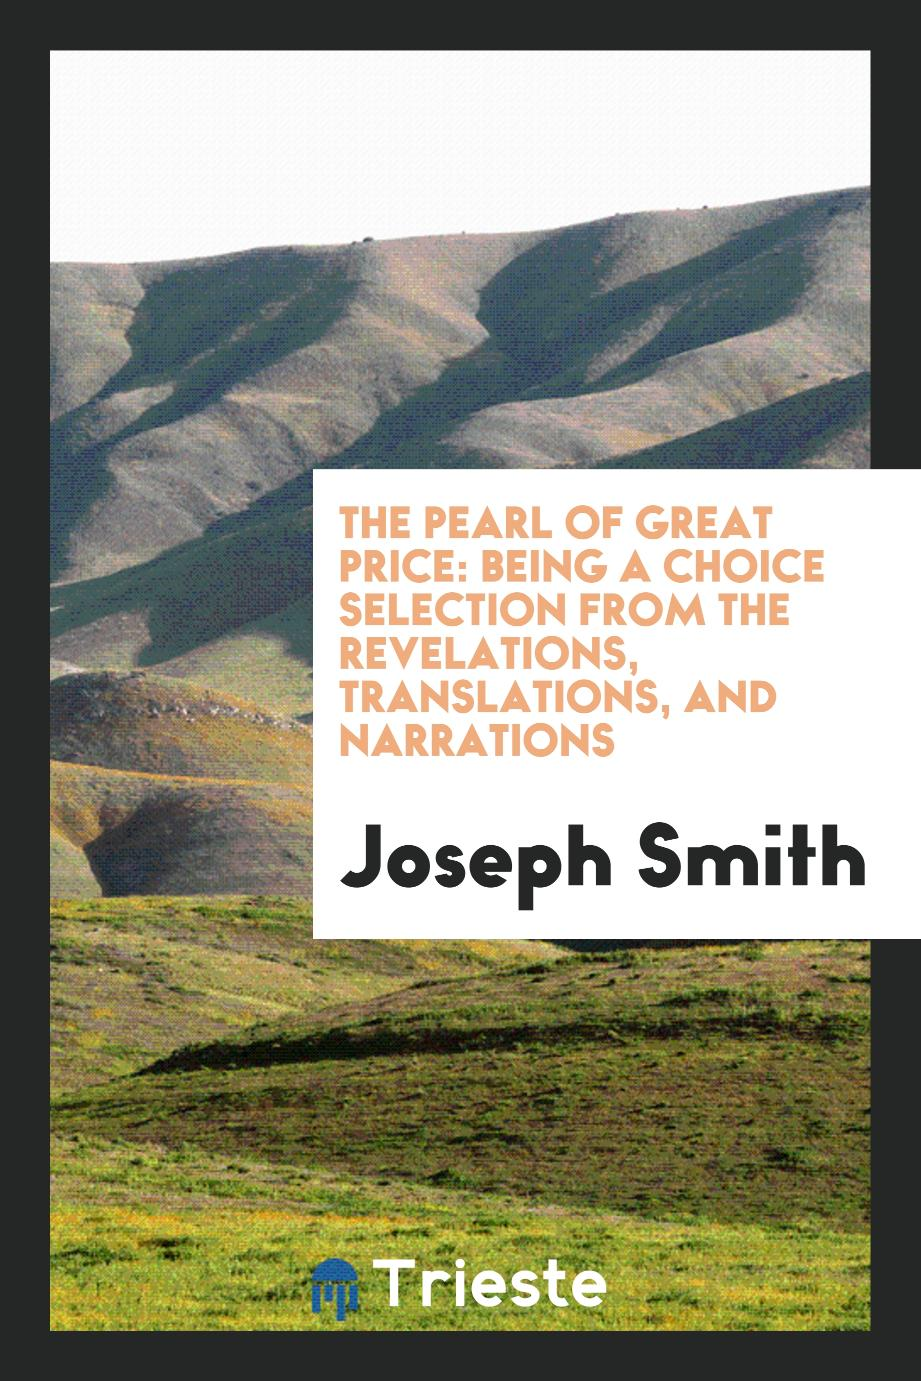 The Pearl of Great Price: Being a Choice Selection from the Revelations, translations, and narrations